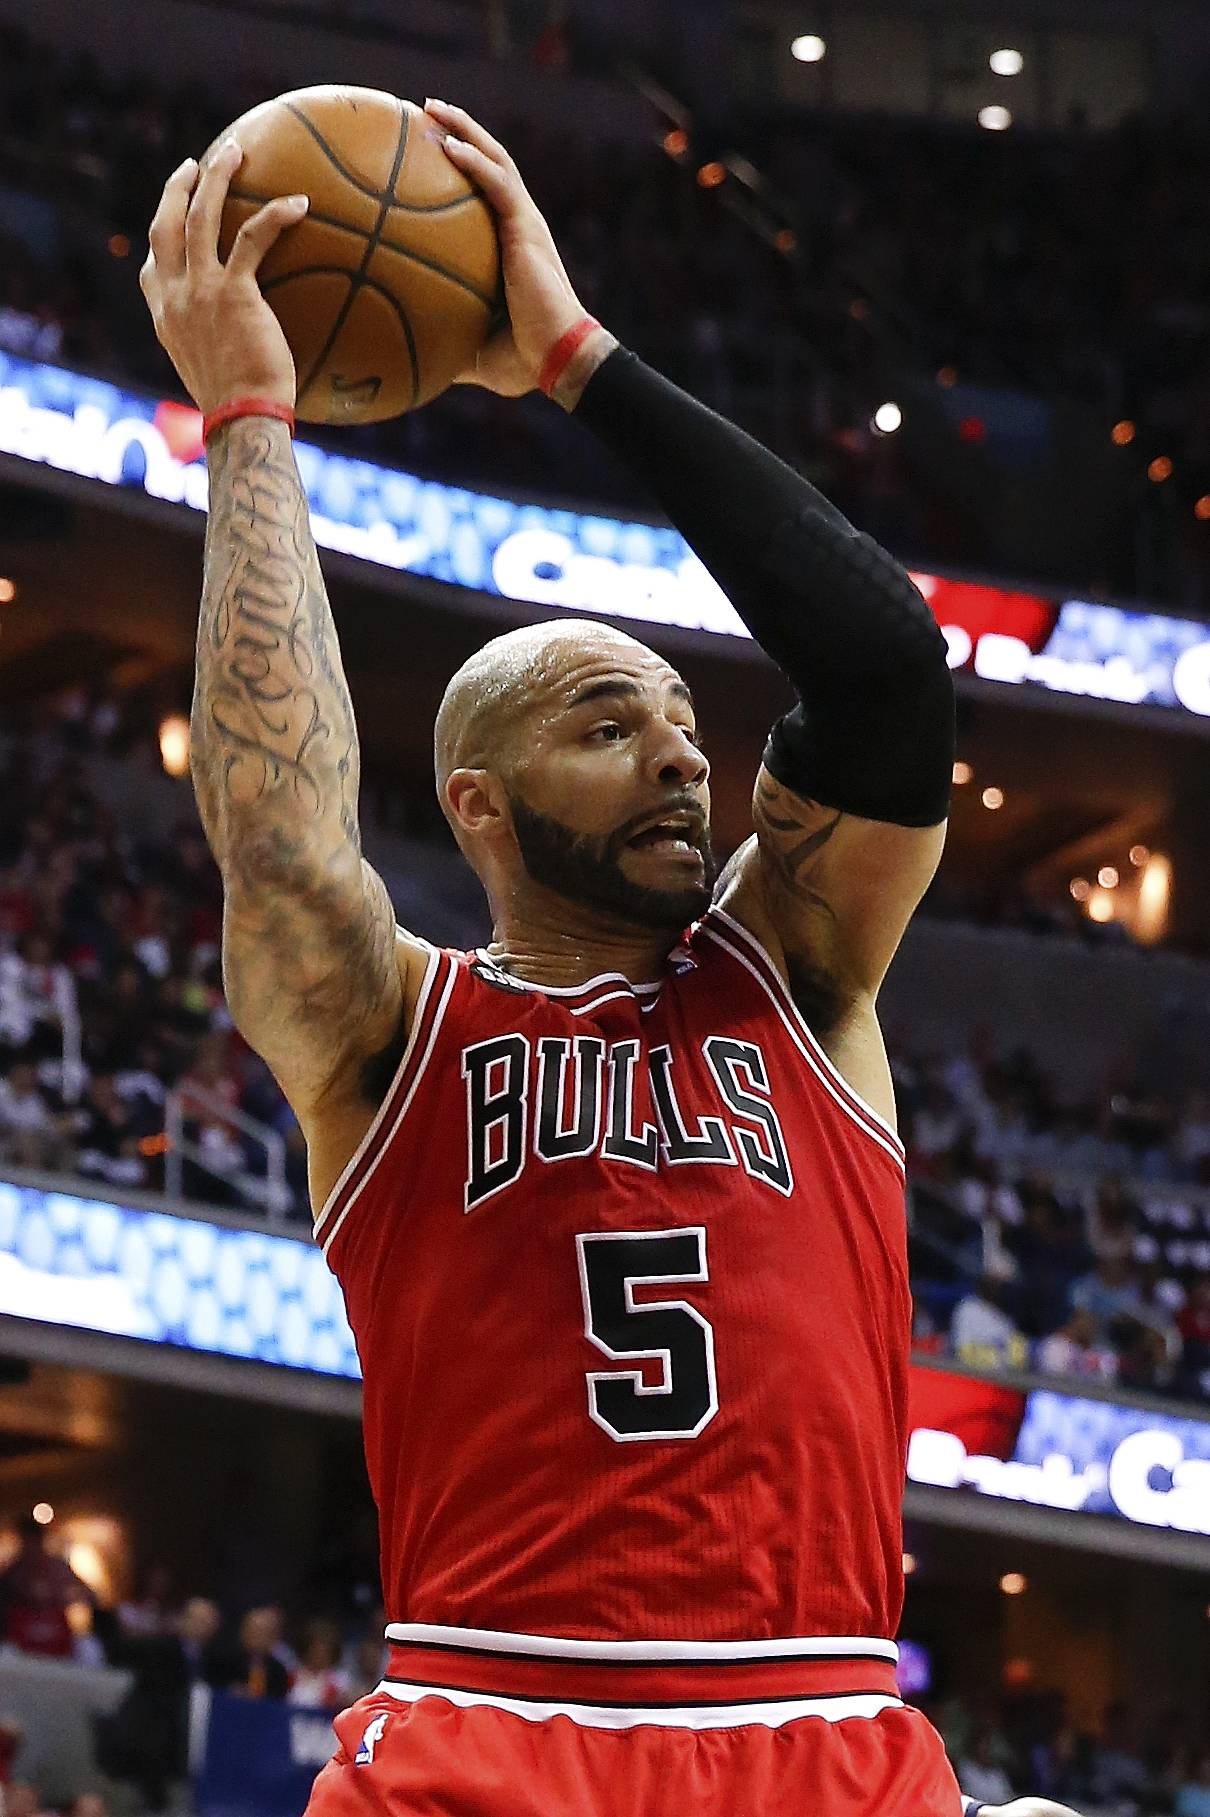 Officially, the Bulls have made no decision on Carlos Boozer's future. But there is no roster flexibility this summer if they don't trade him or use the amnesty clause -- which is why it seems to be a certainty, according to Mike McGraw.